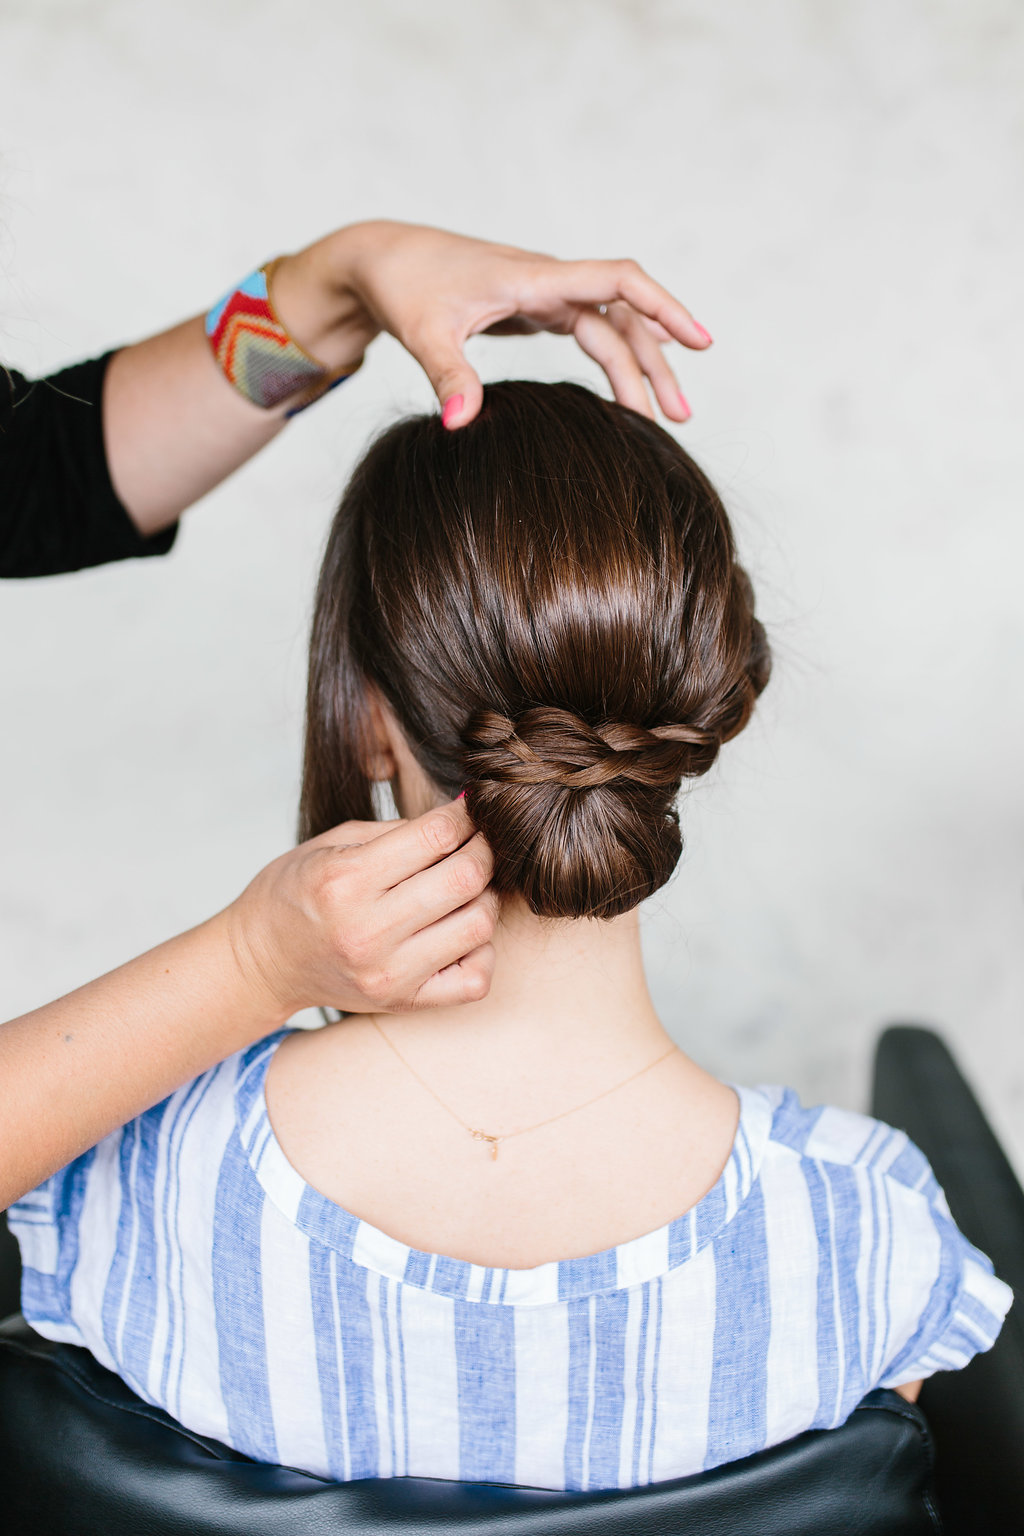 Securing a braid to the bun